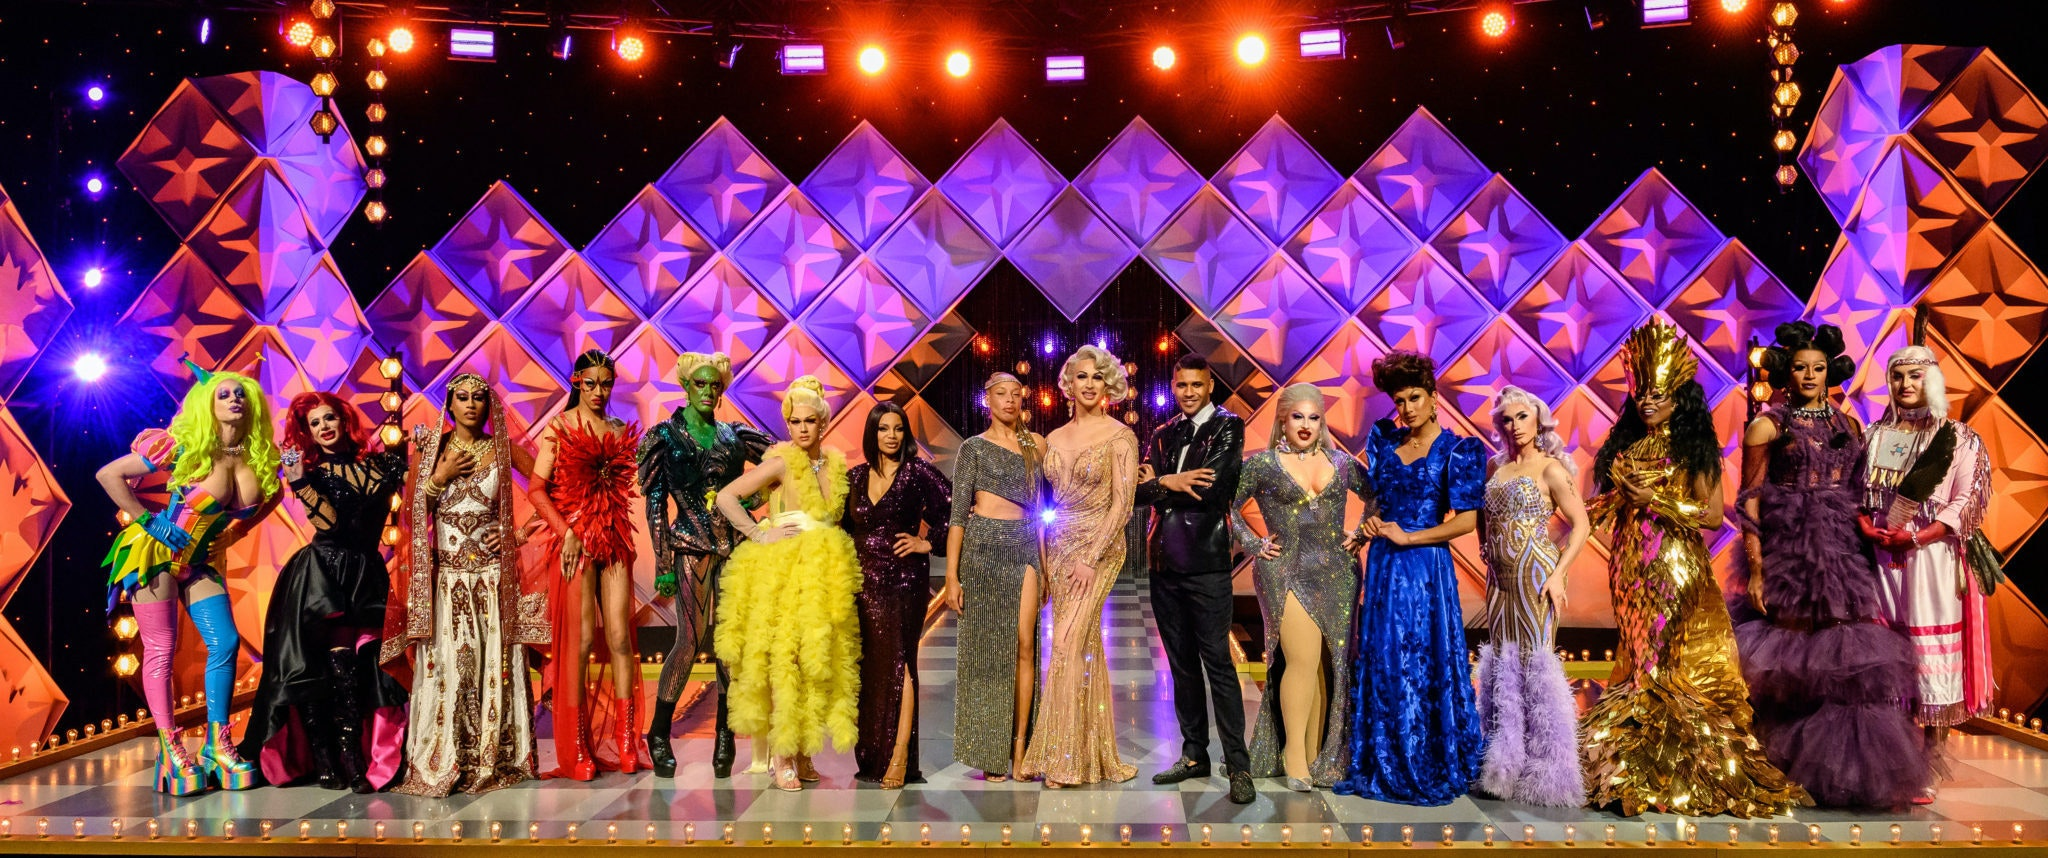 Canada S First Drag Superstar Is Crowned On The Season Finale Of Canada S Drag Race Bell Media